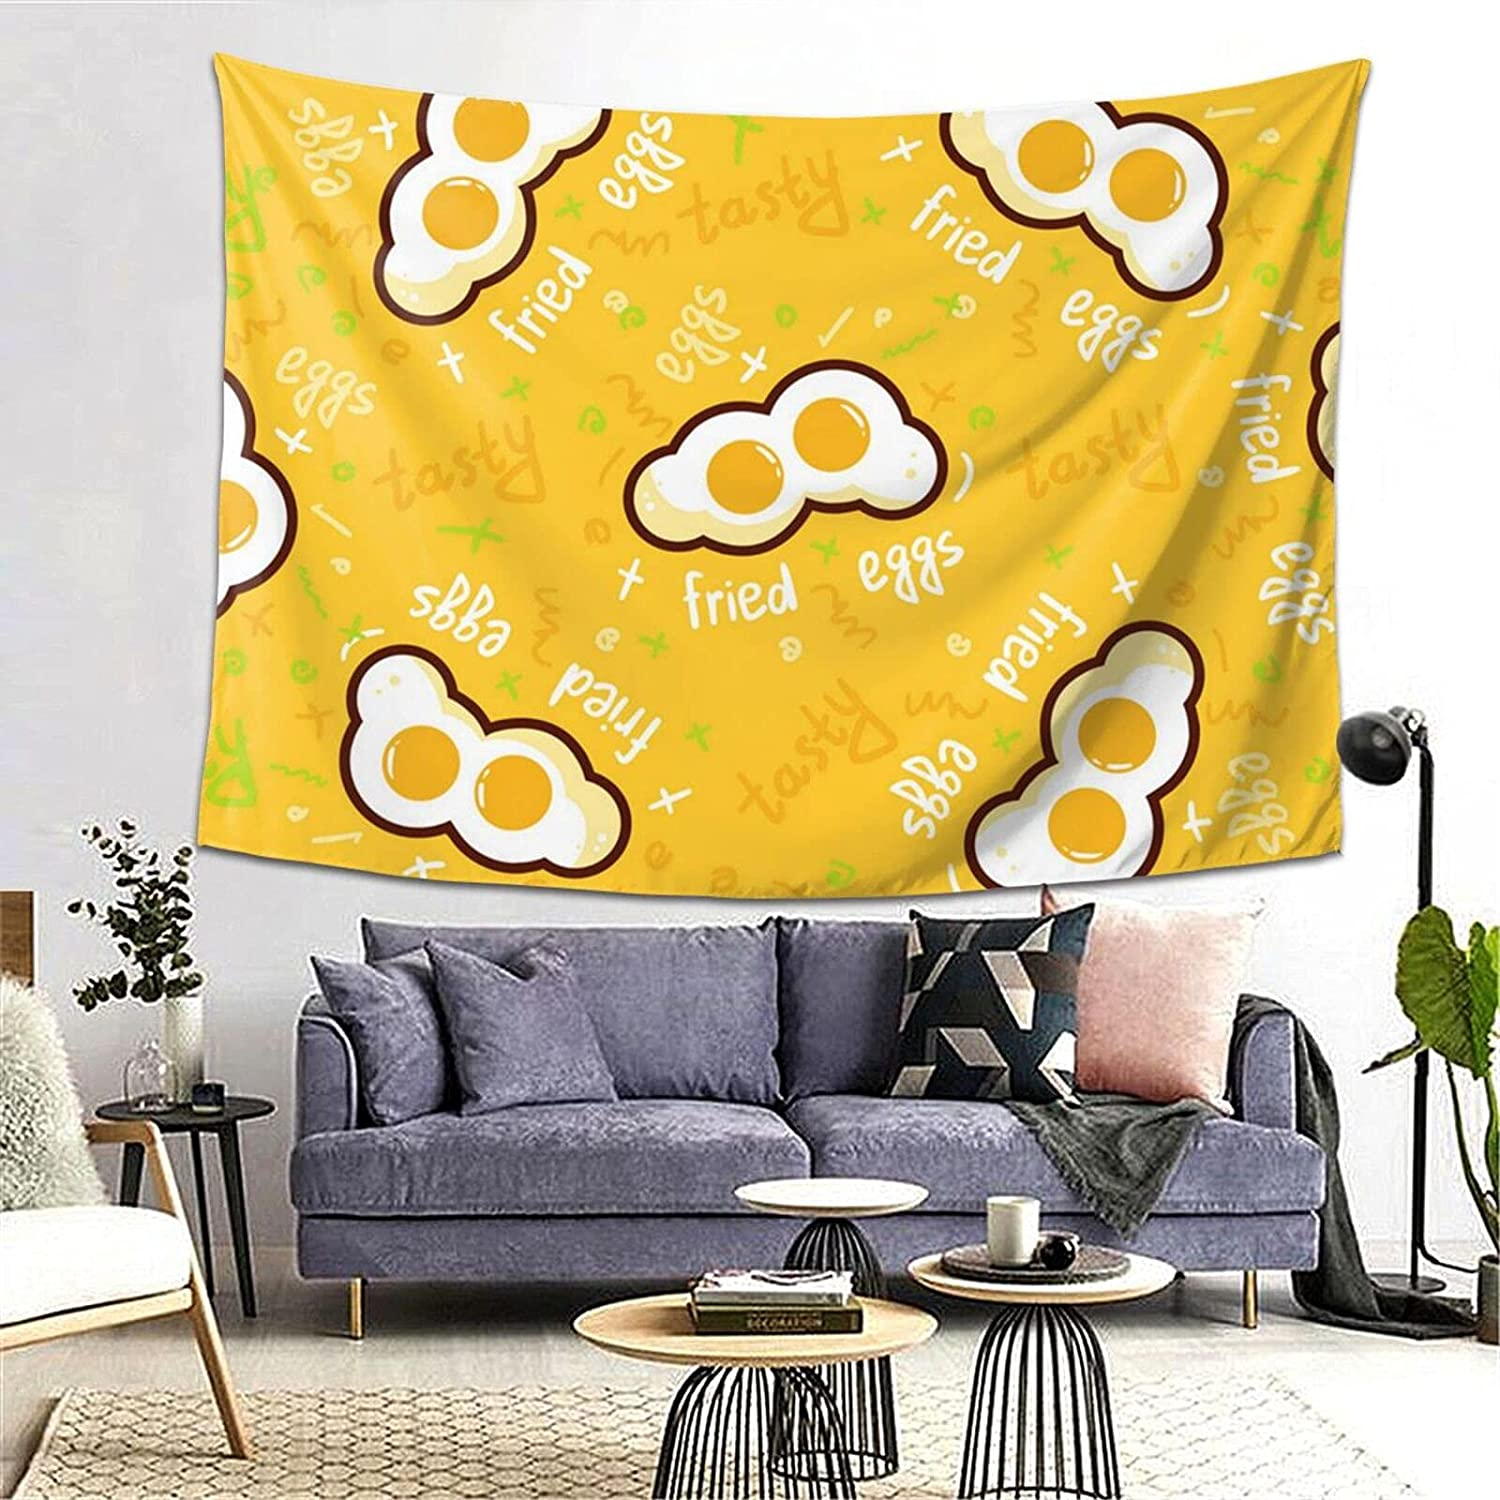 POAA Tapestries Wall Art Cute Fried Manufacturer direct delivery Eggs Outlet ☆ Free Shipping Twins Aesthetic Tapestr